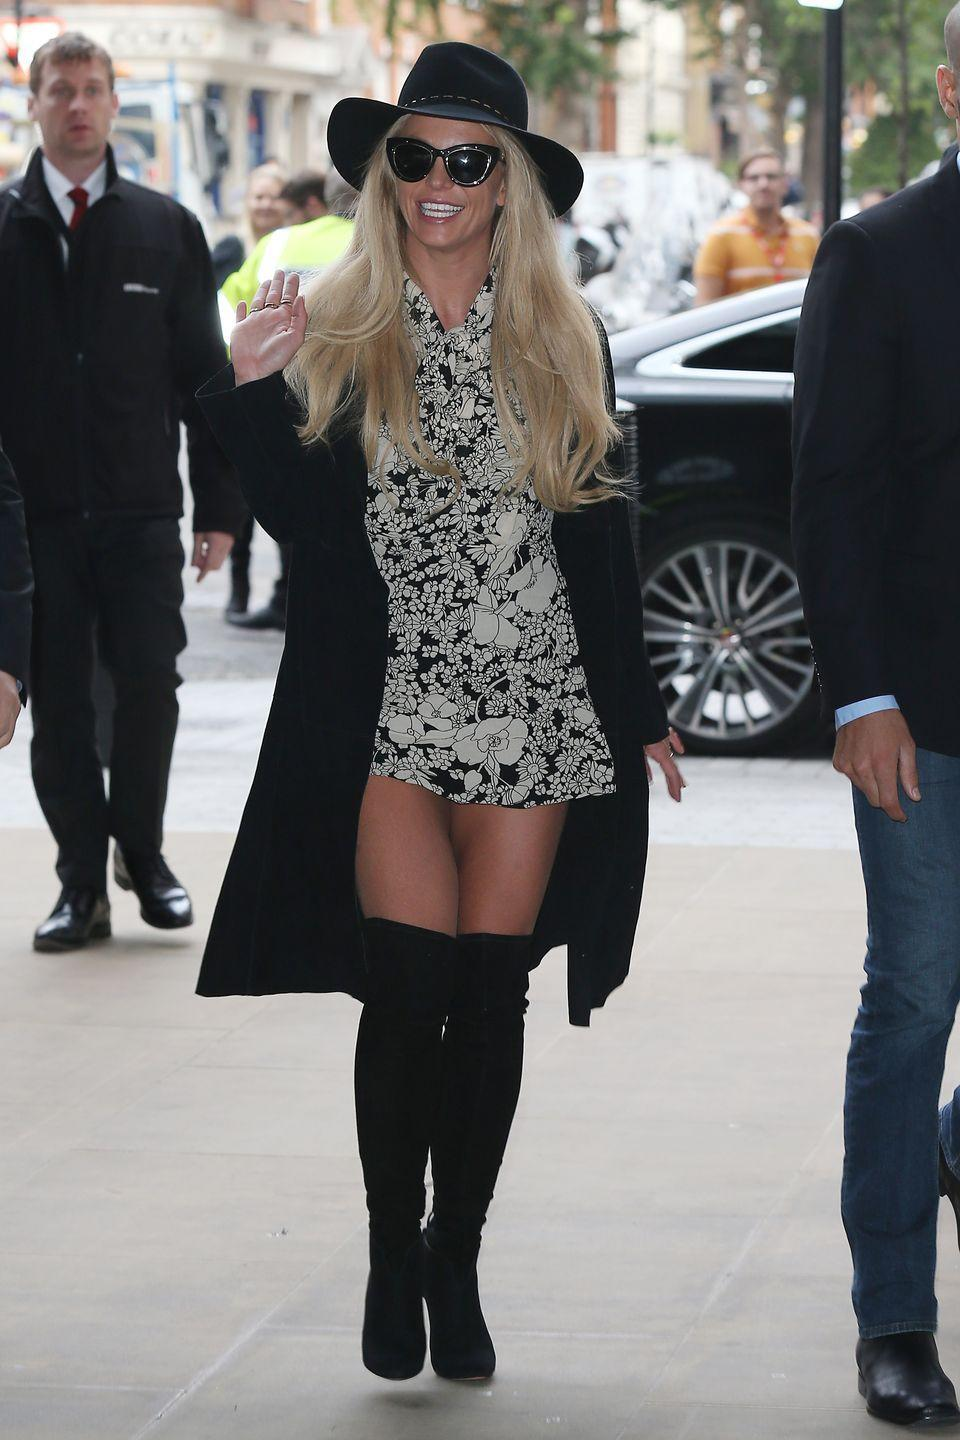 <p>Britney Spears is photographed in London, England at BBC Radio 1 on September 28, 2016.</p>